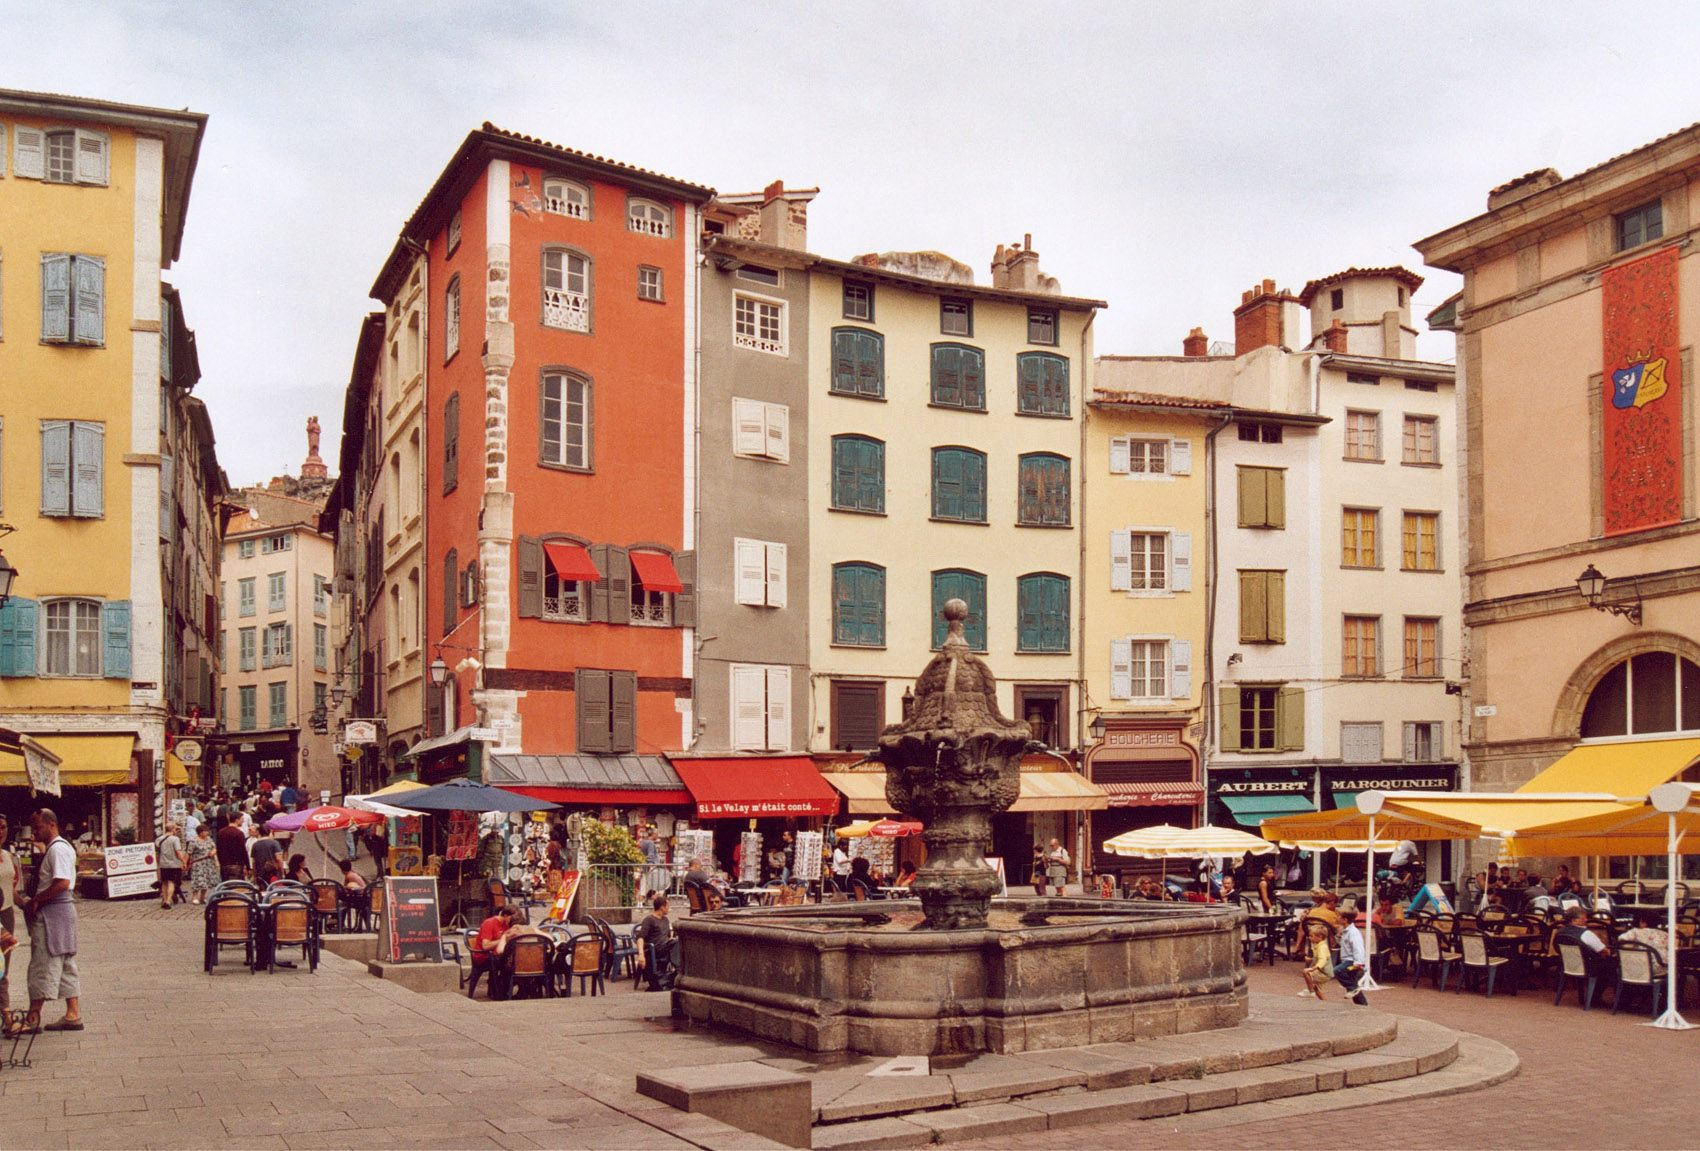 Fountain in center of Le Puy en Velay